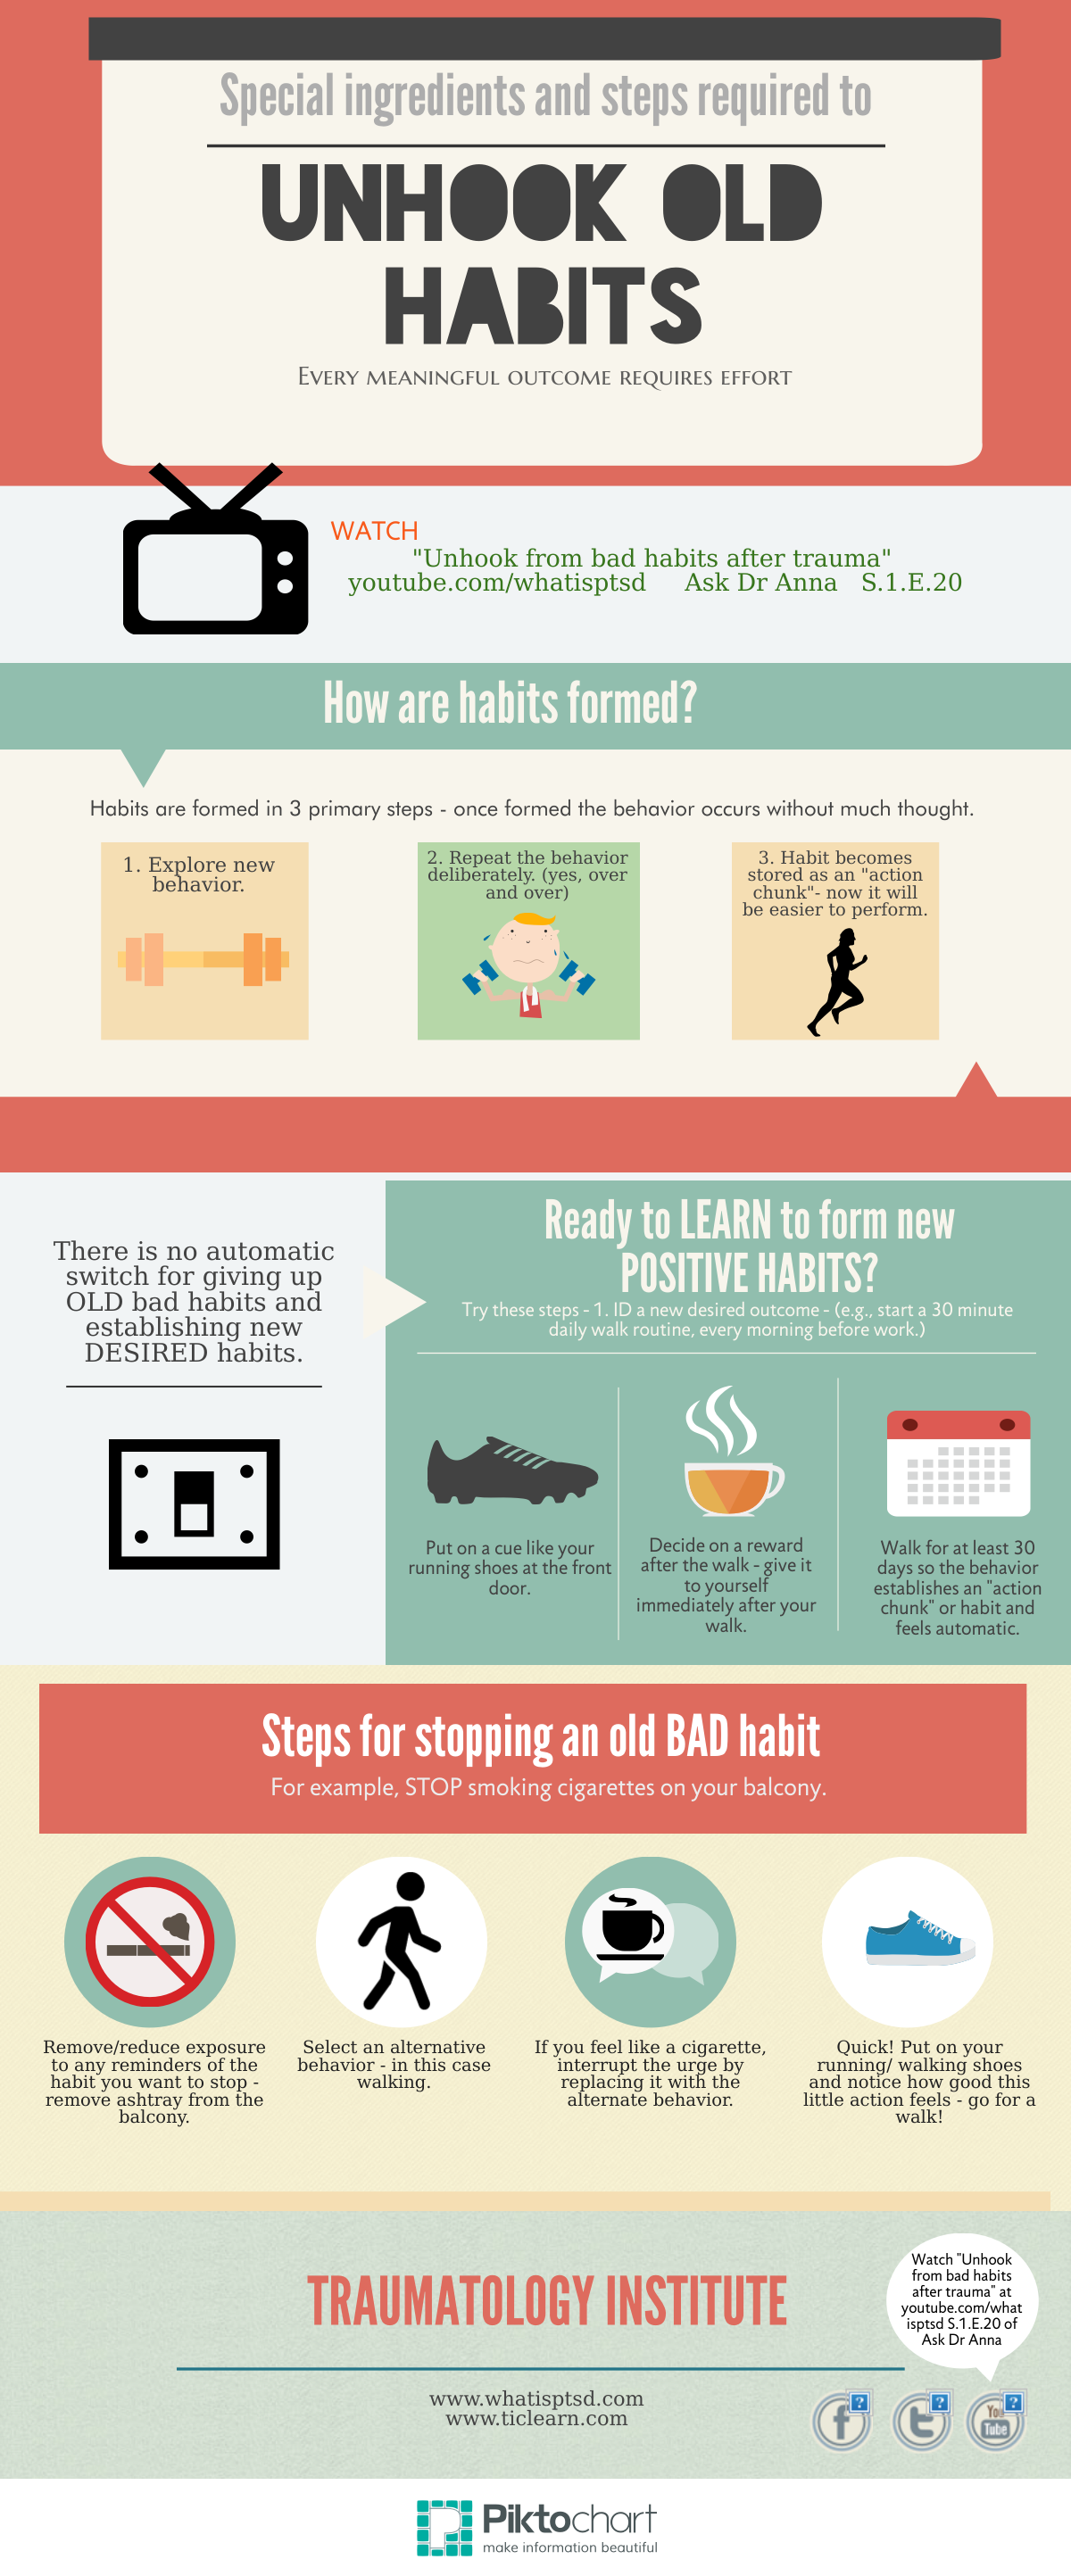 Unhook Old Habits infographic